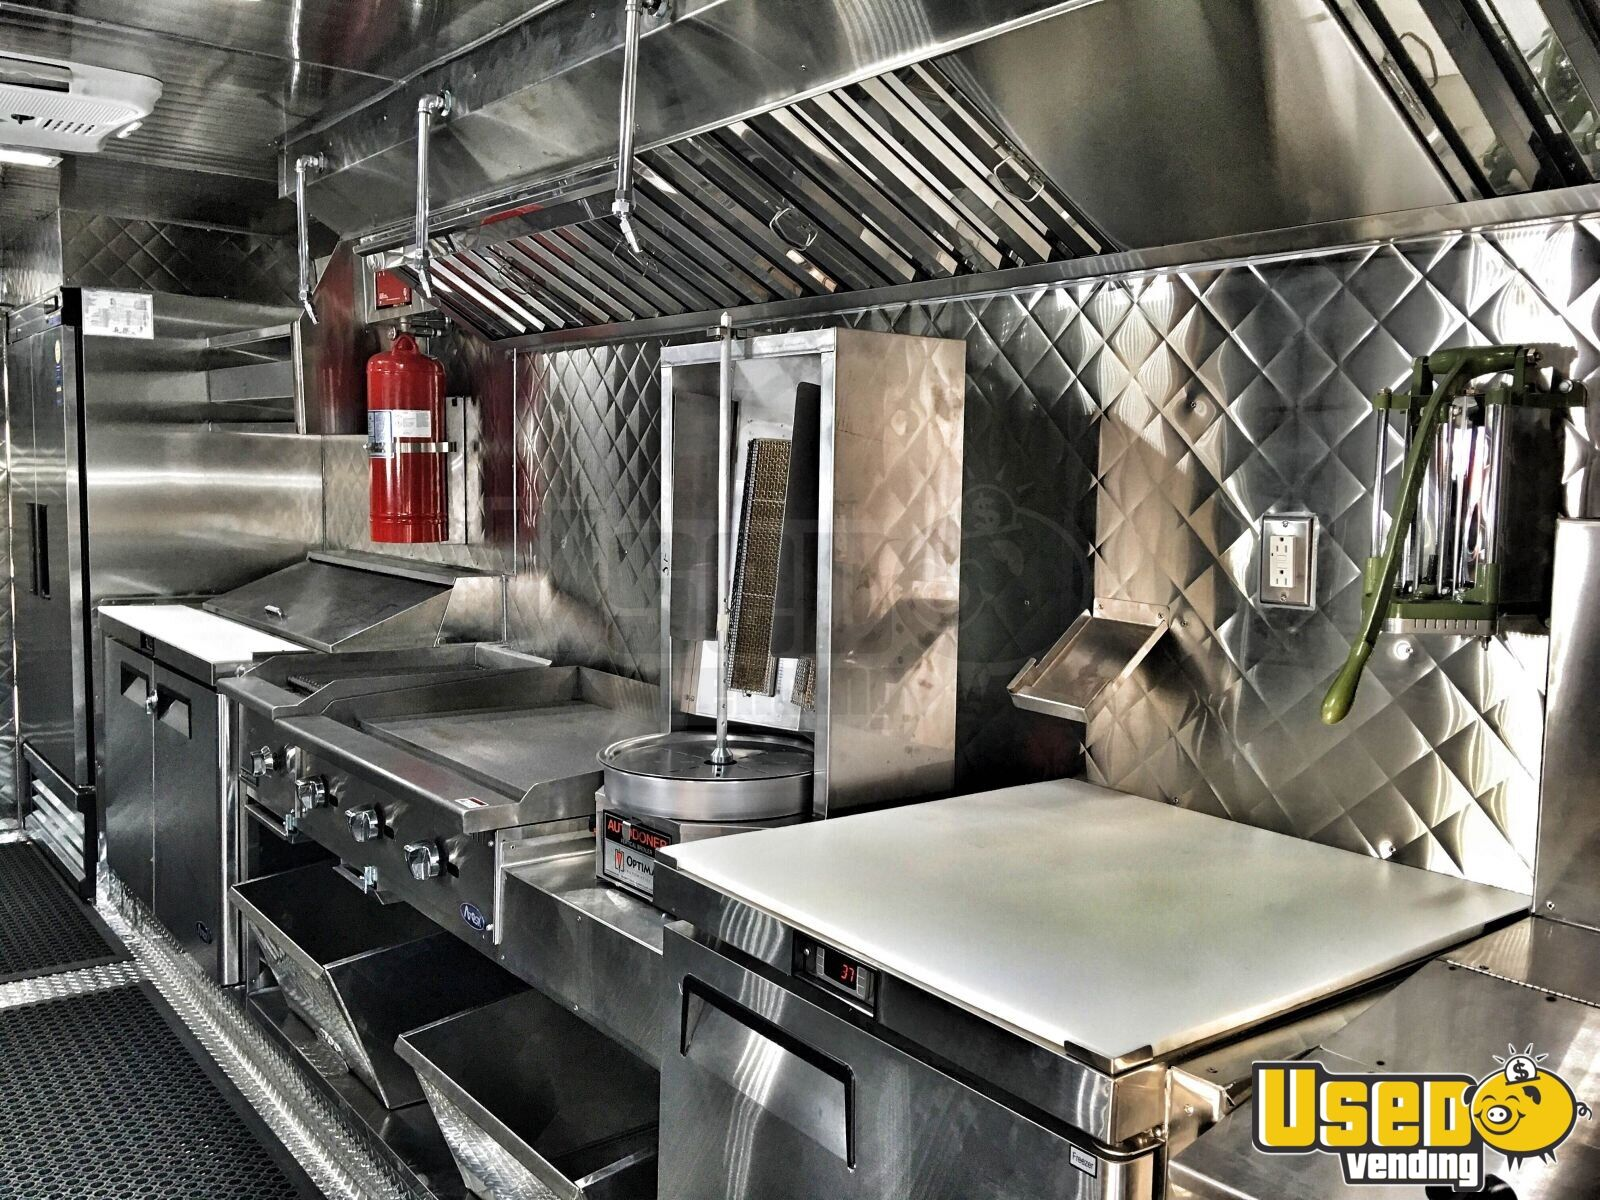 1995 Chevrolet Food Truck Insulated Walls California Diesel Engine for Sale - 6